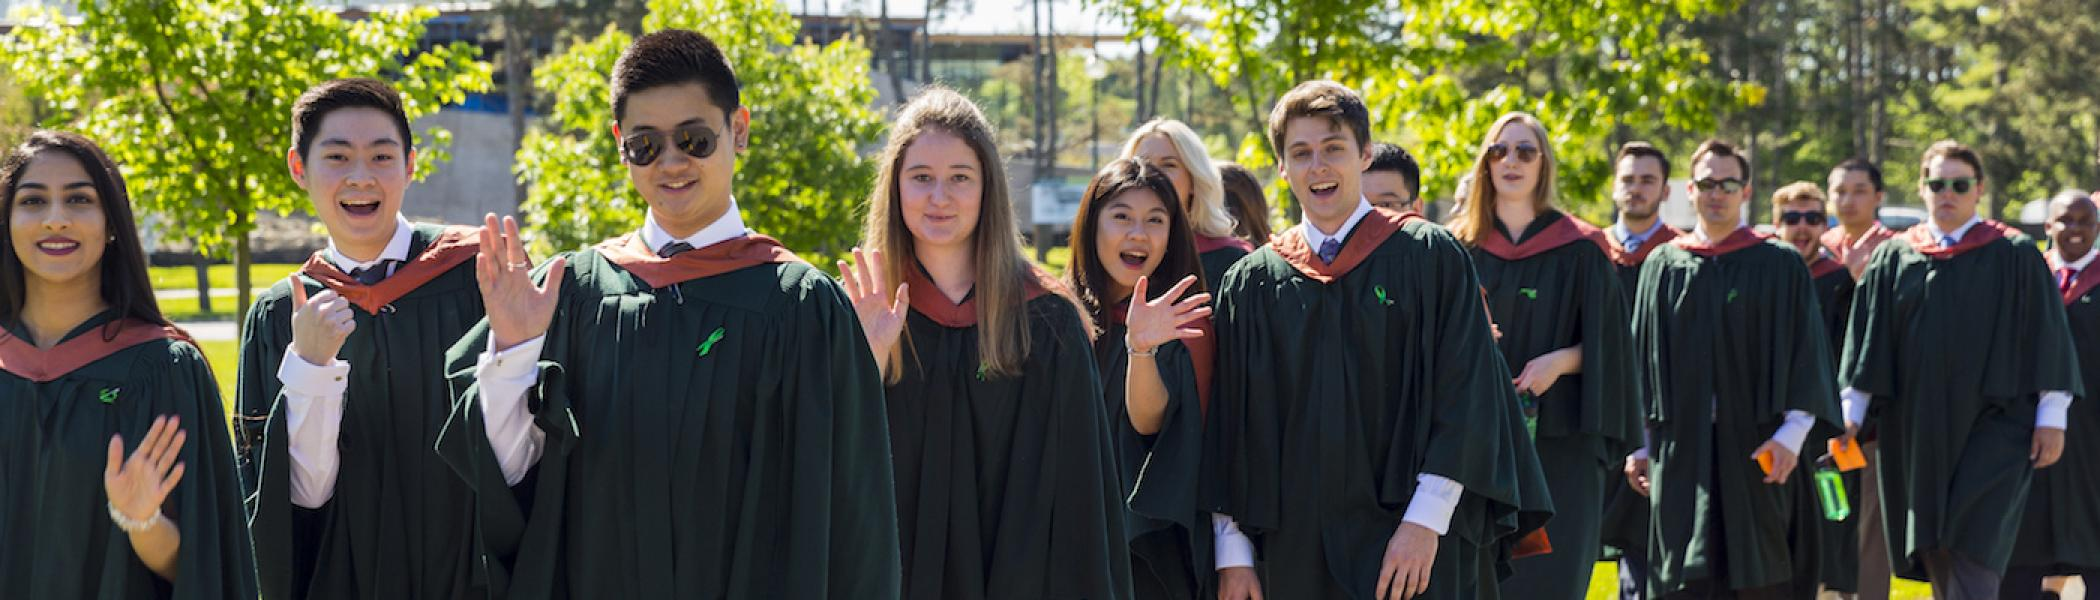 A line of graduating students on convocation day waving and smiling at the camera